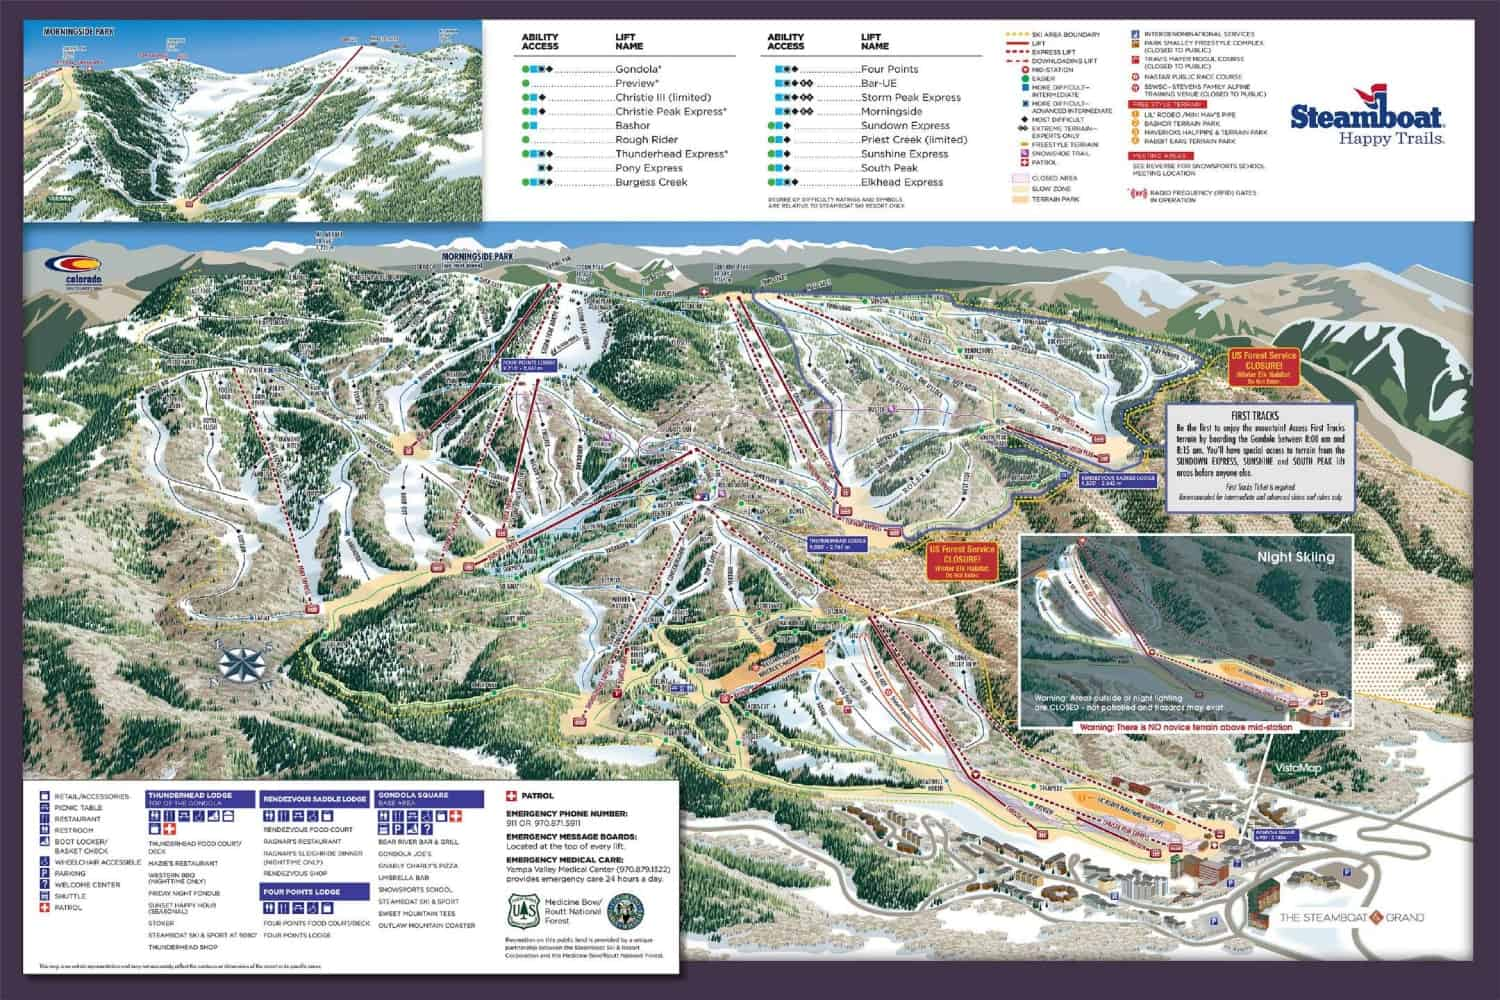 Steamboat Ski Trail Map 2018